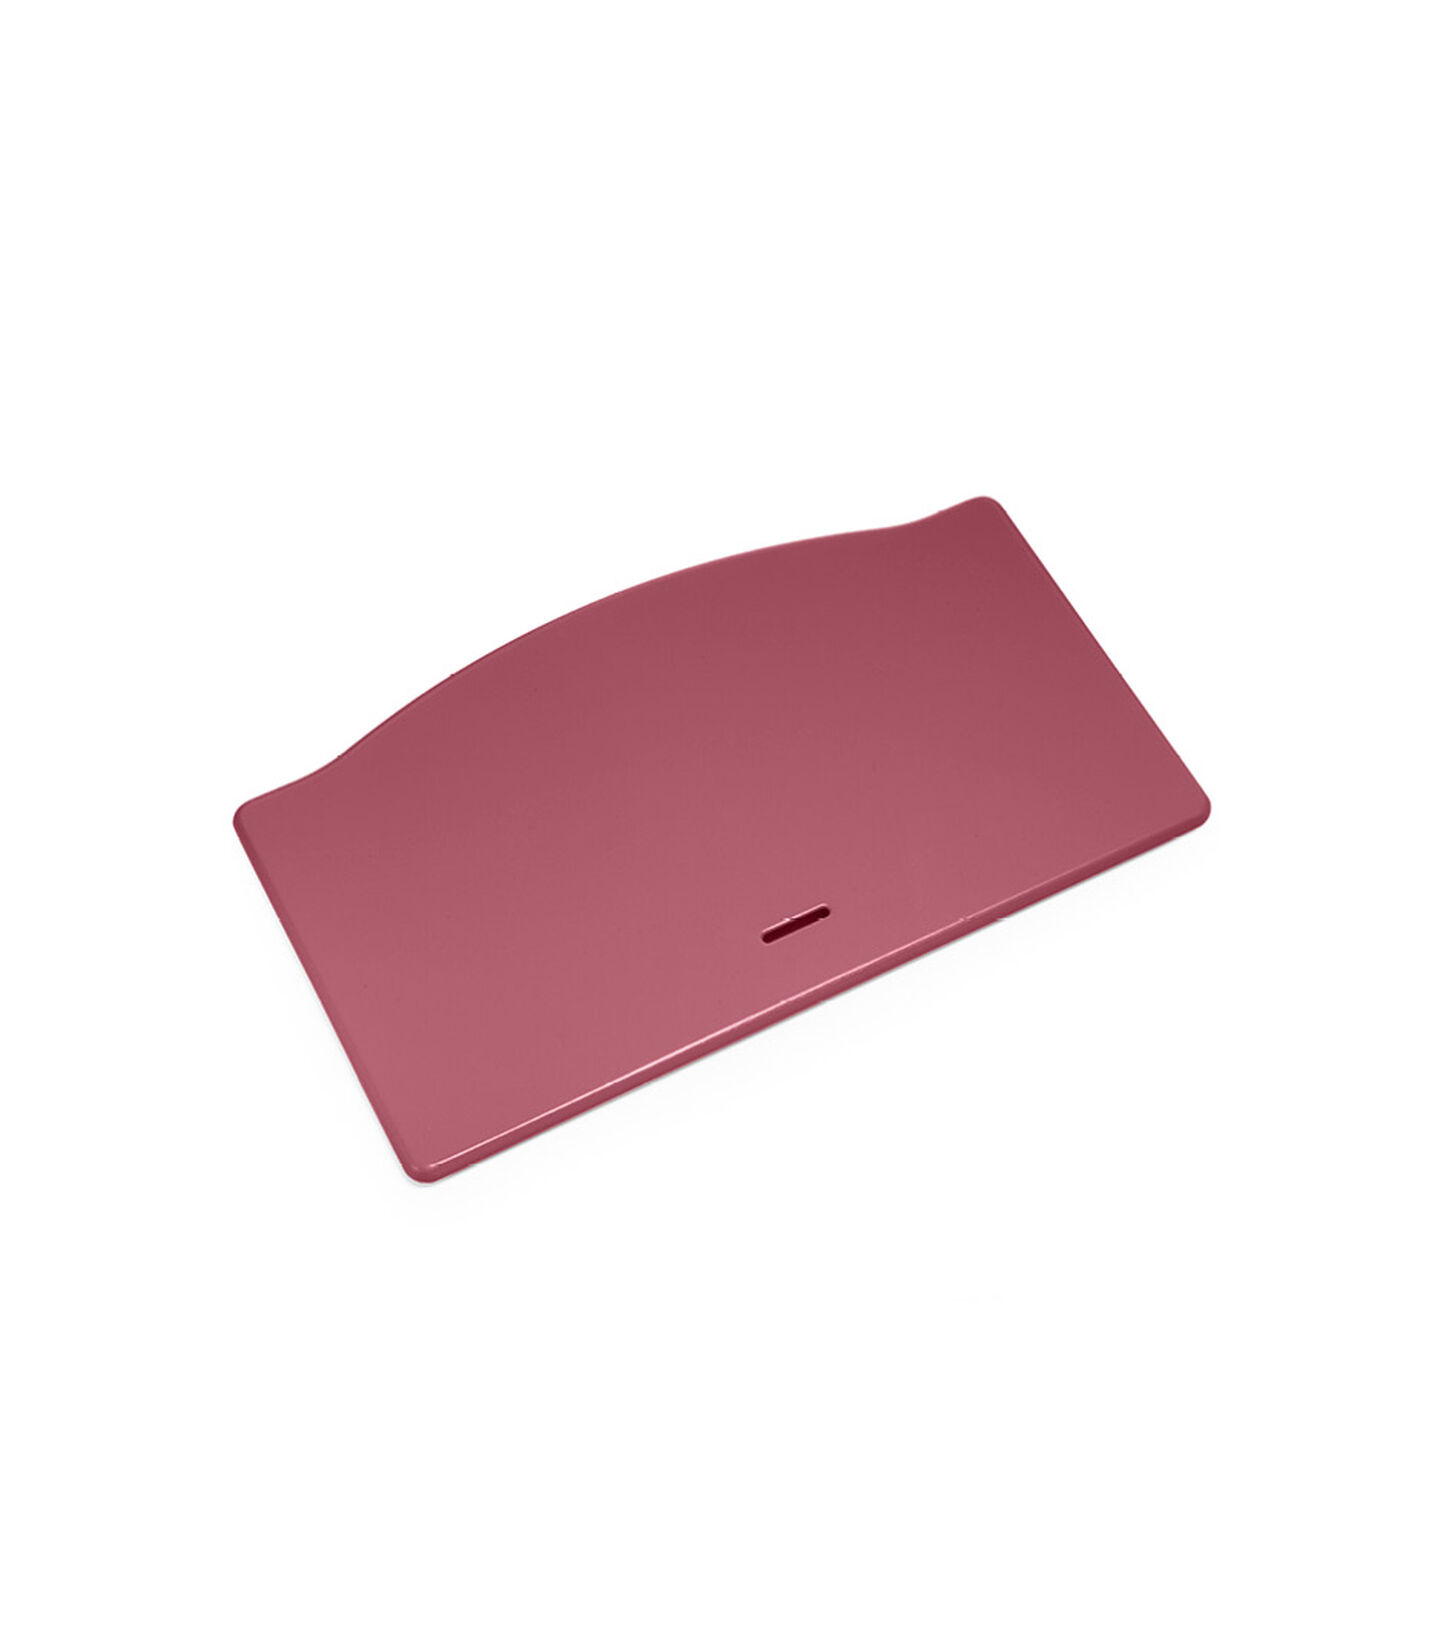 Tripp Trapp® Seatplate Heather Pink, Heather Pink, mainview